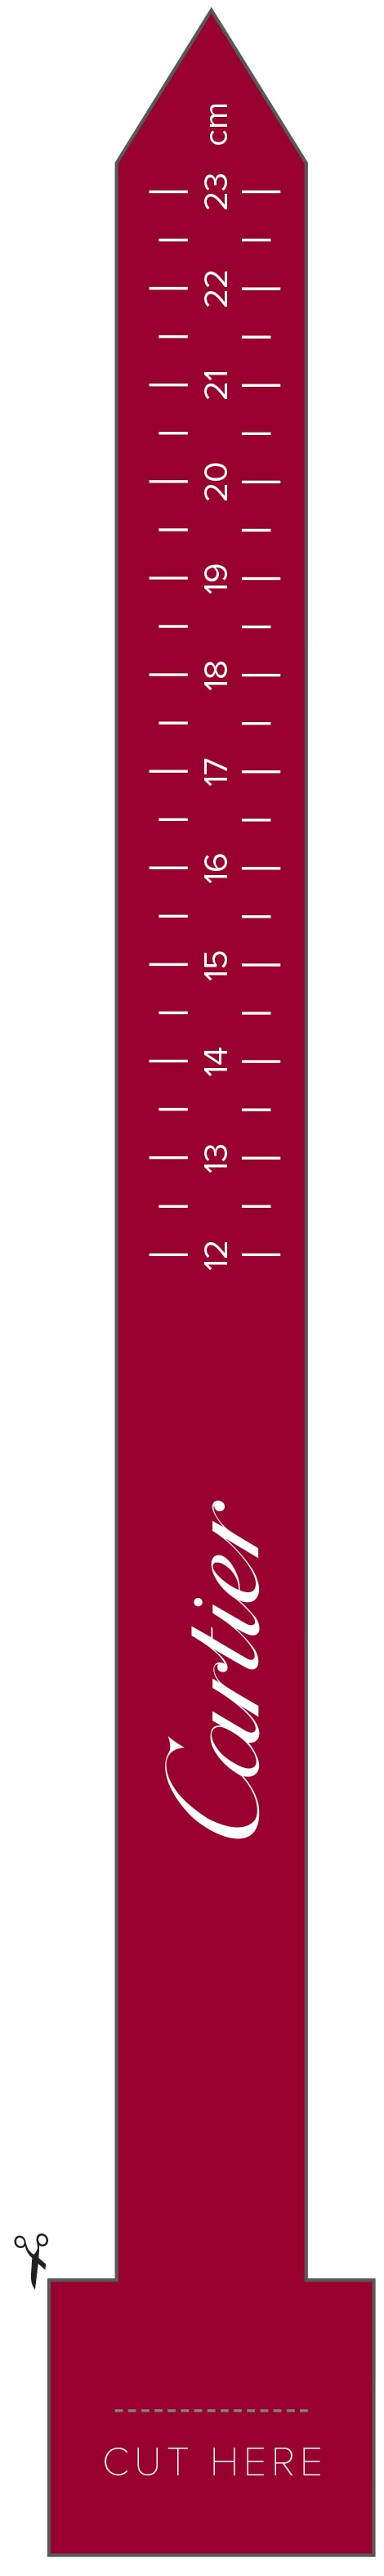 Download and print the ruler to cut